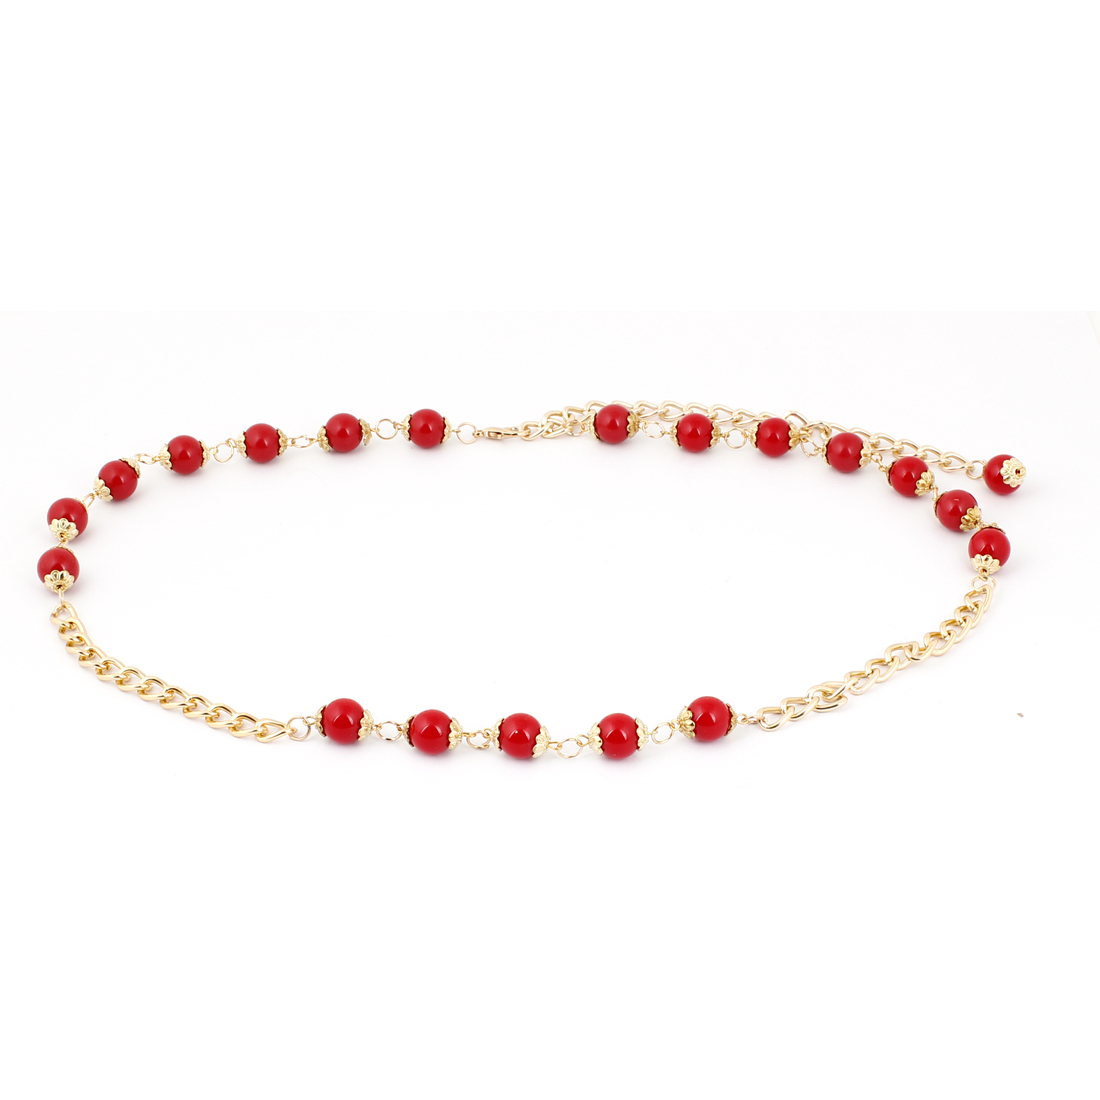 Lady Red Gold Tone Lobster Clasp Beaded Metallic Chain Cinch Waist Belt